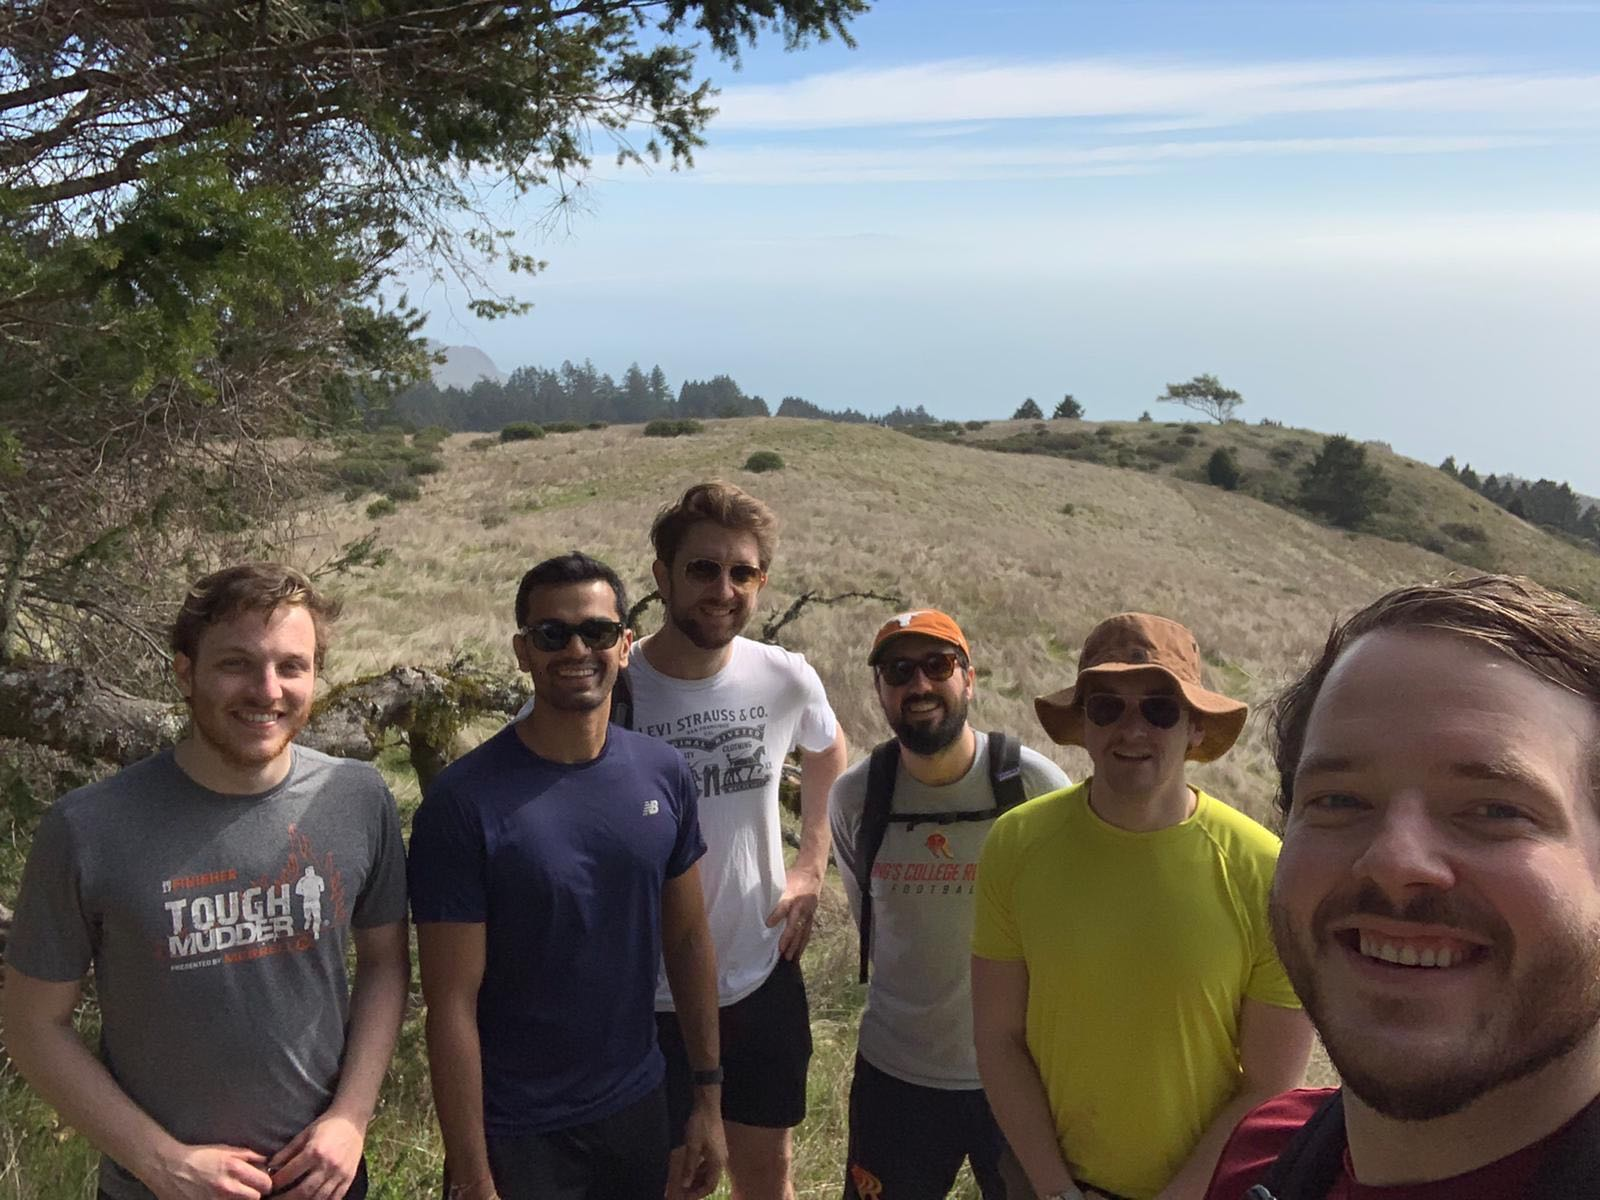 Hiking at Stinson Beach with friends